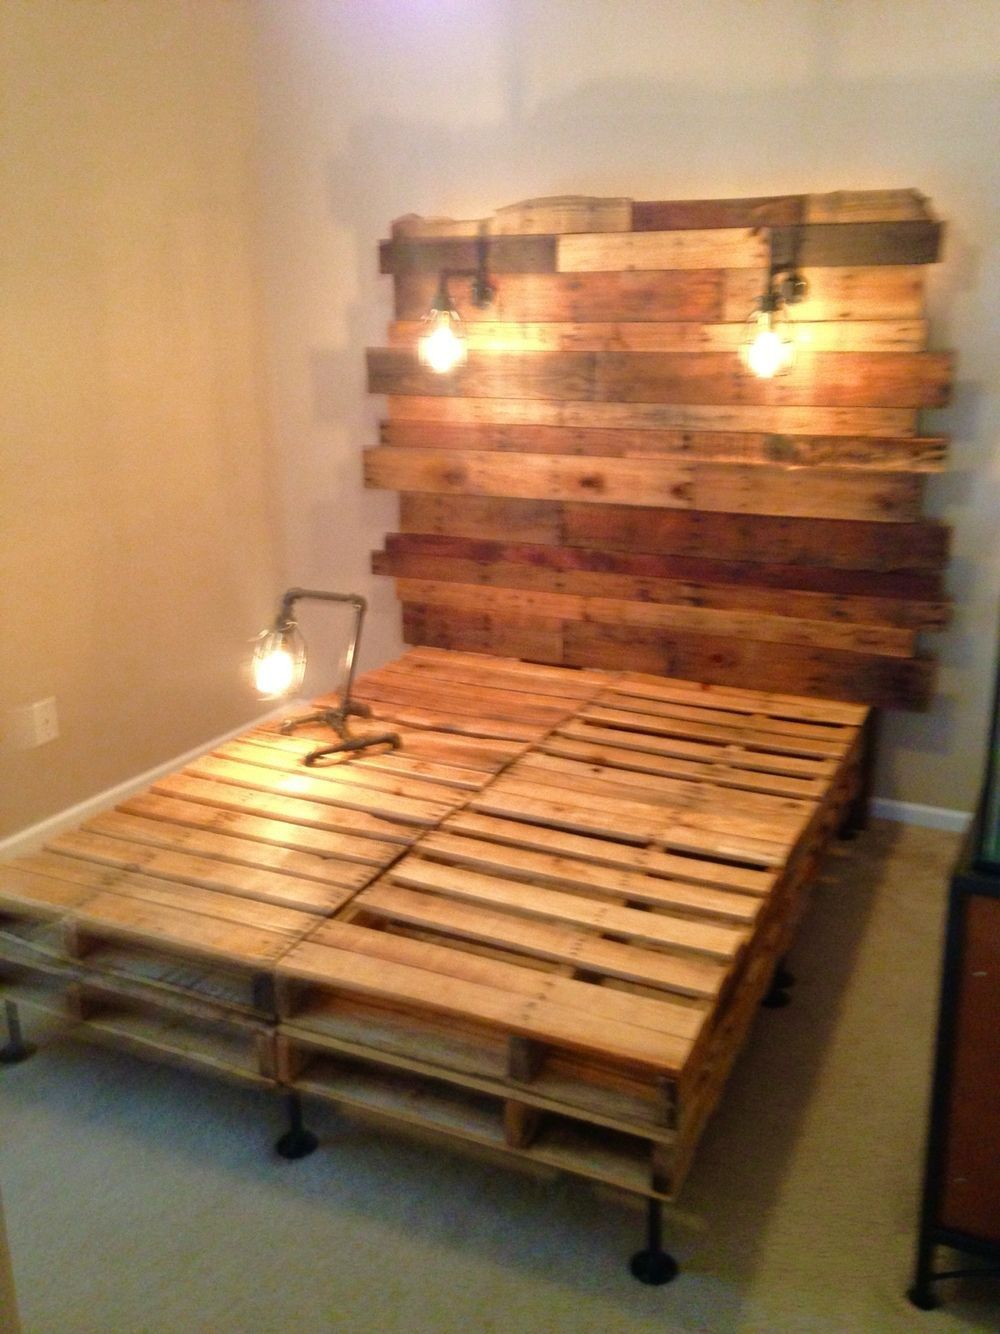 Pallet Furniture Bedroom Pallet Bed With Edison Builds And Birdcage Light Frames Things To Pallet Bed Frame Diy Diy Pallet Bed Wood Pallet Bed Frame